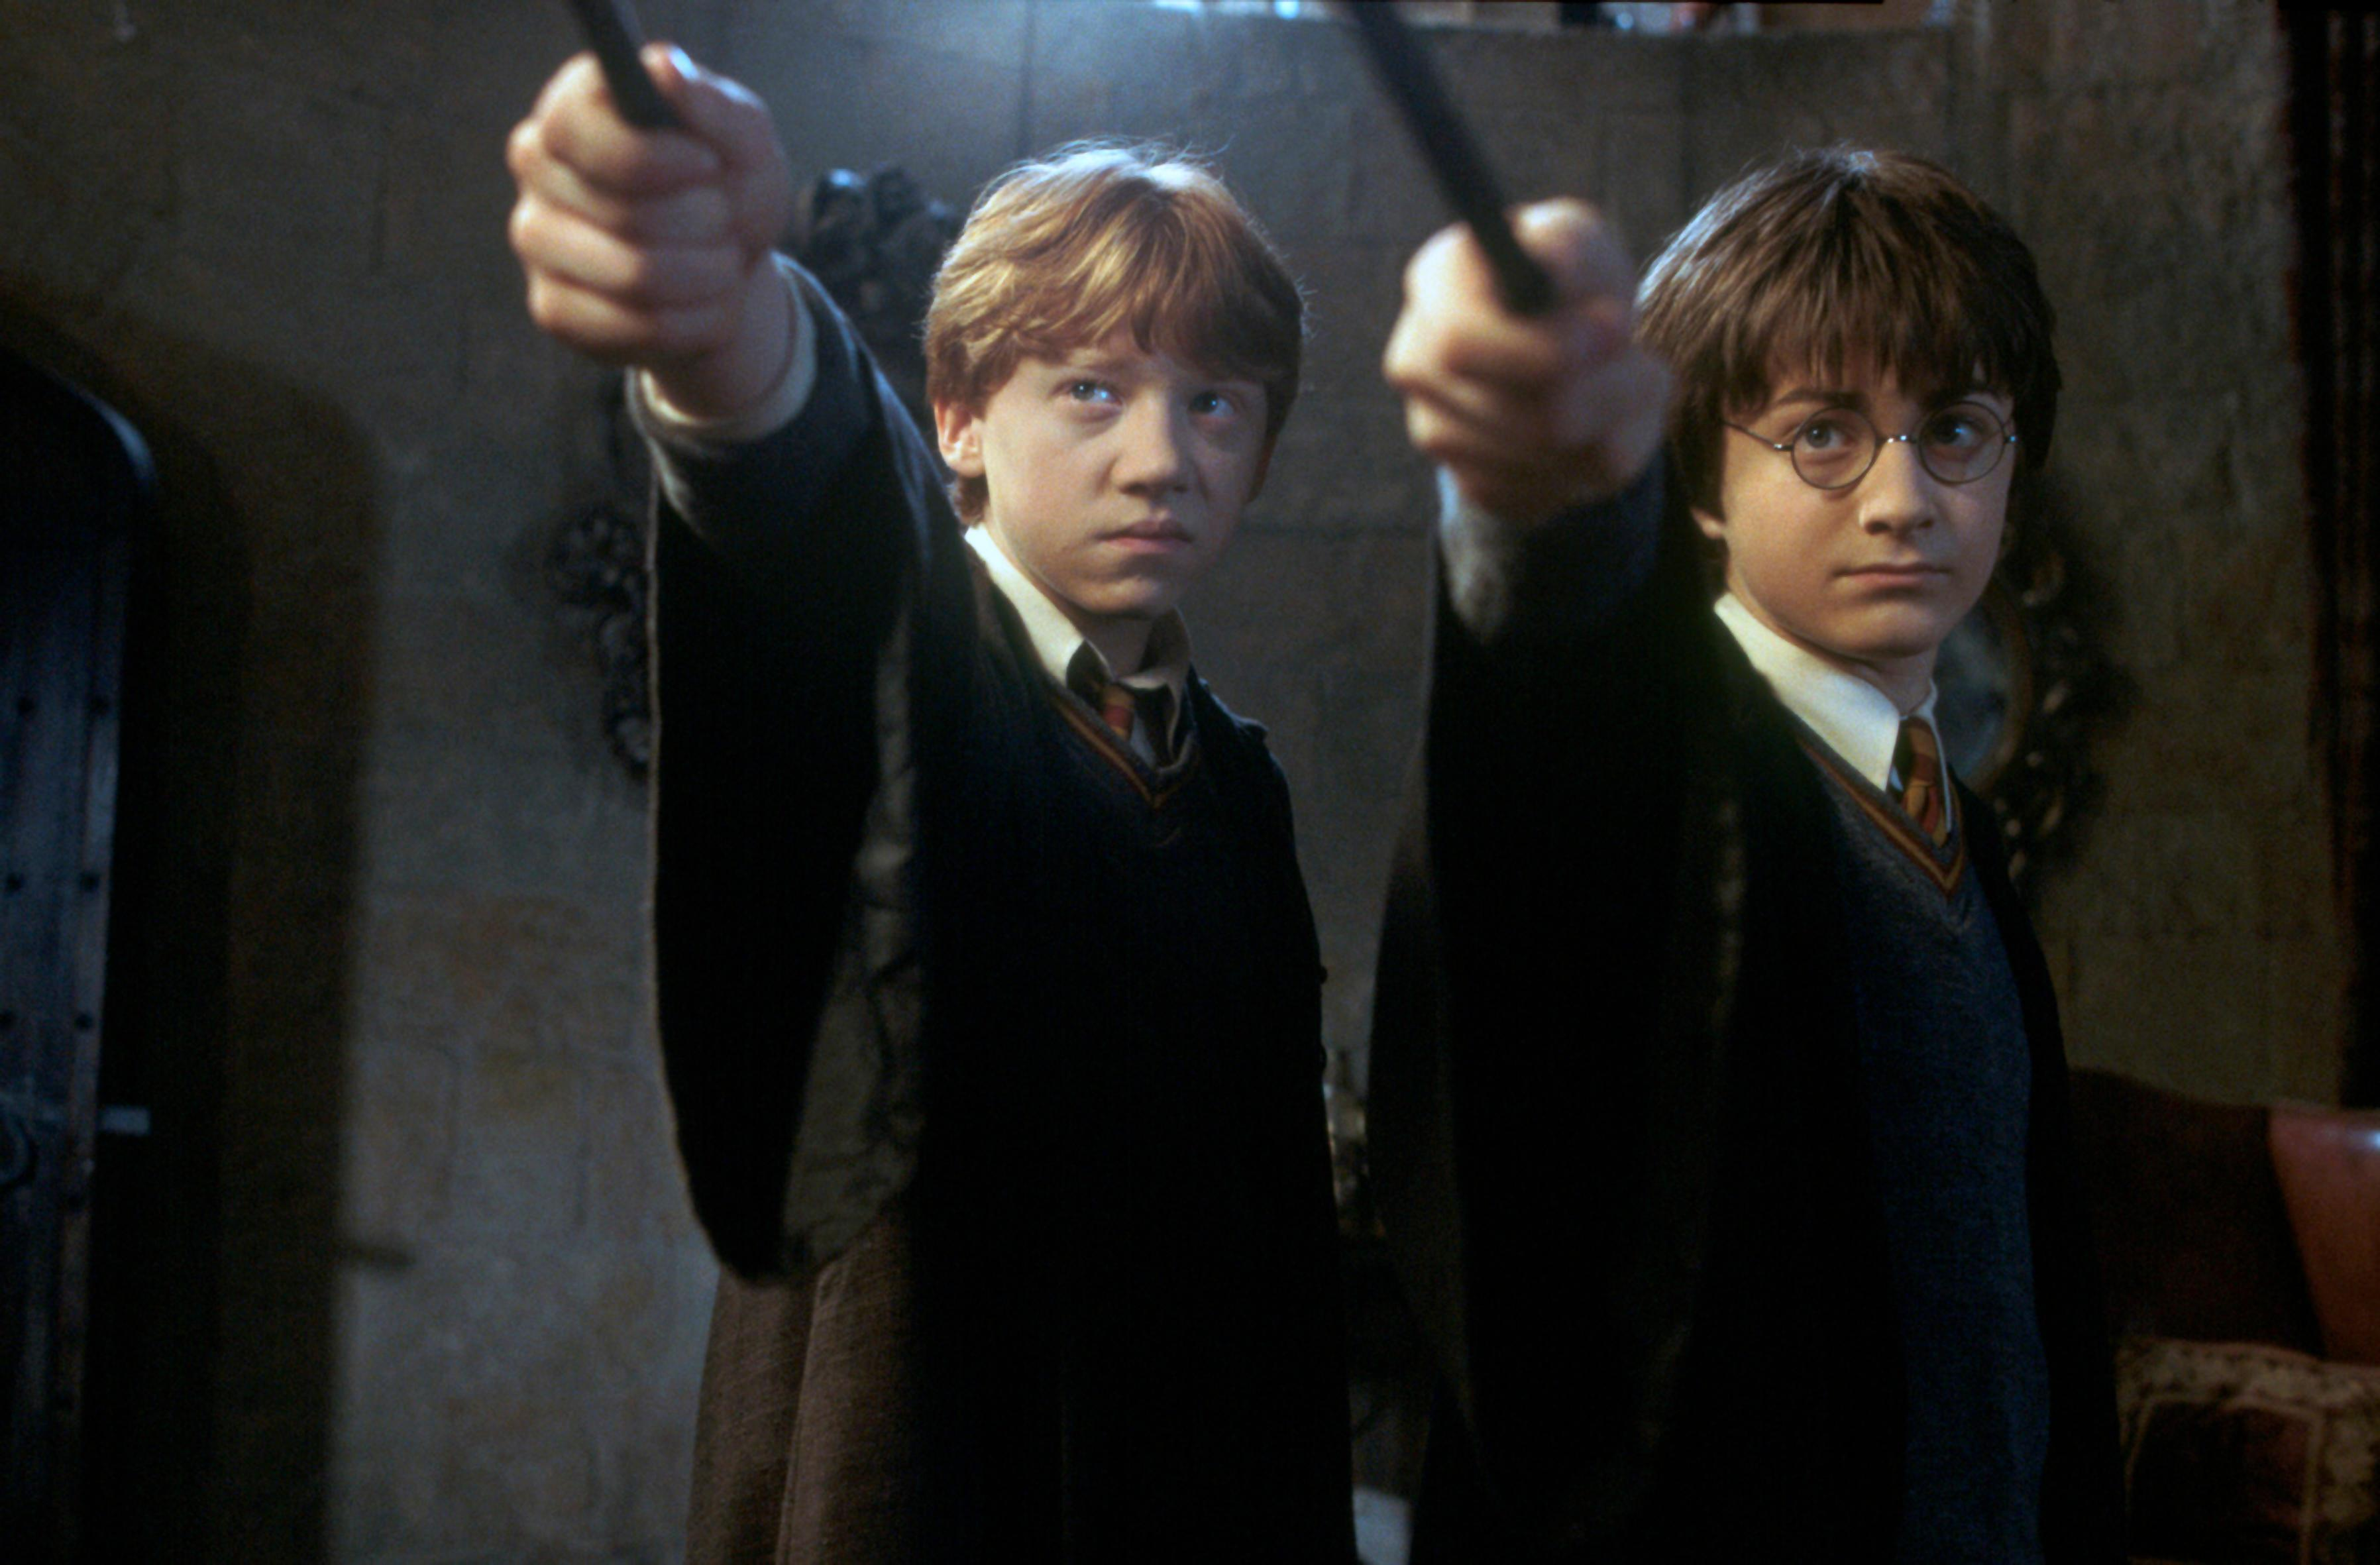 Harry Potter blamed for rise in exorcisms as priests say interest in magic is behind spike in 'demonic possessions'